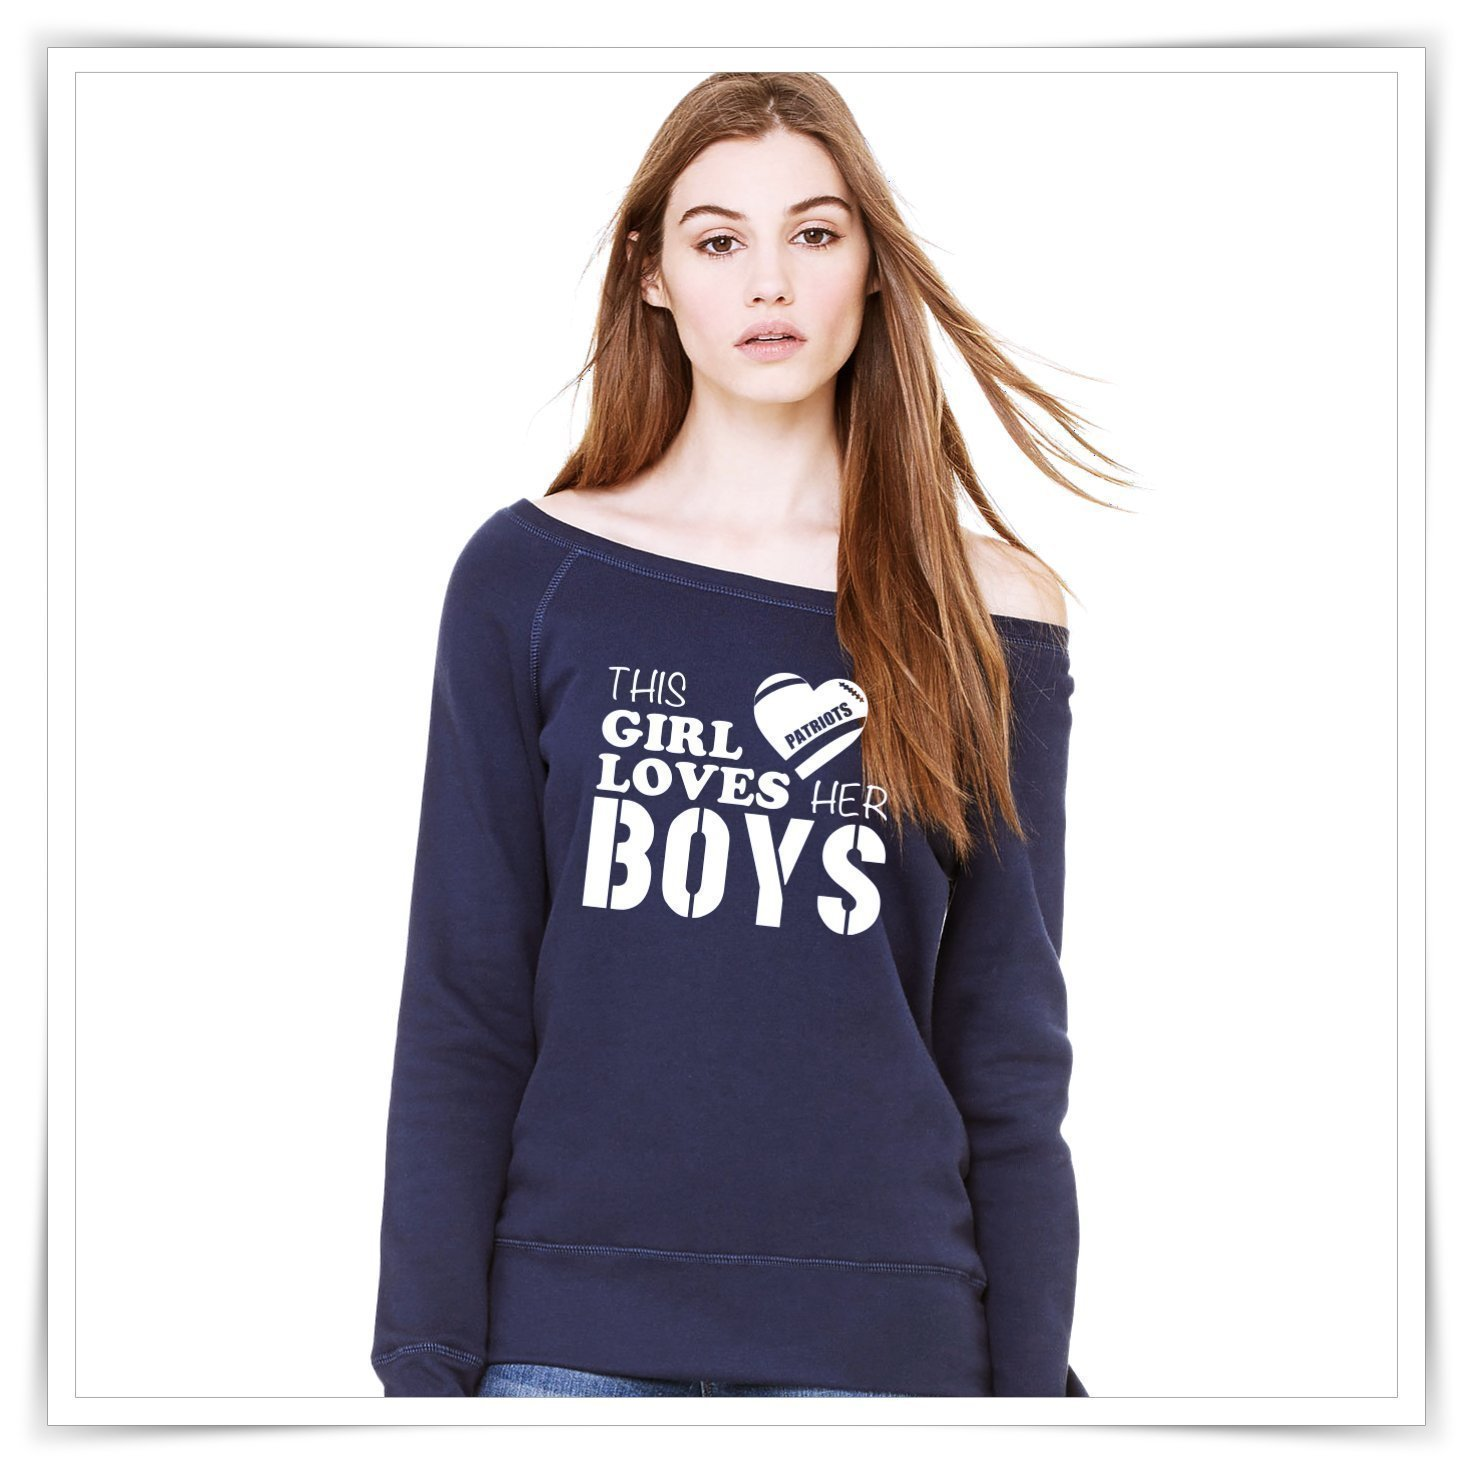 This Girl Loves Her Boys. New England Patriots Inspired Shirt. Patriots Sweatshirt.